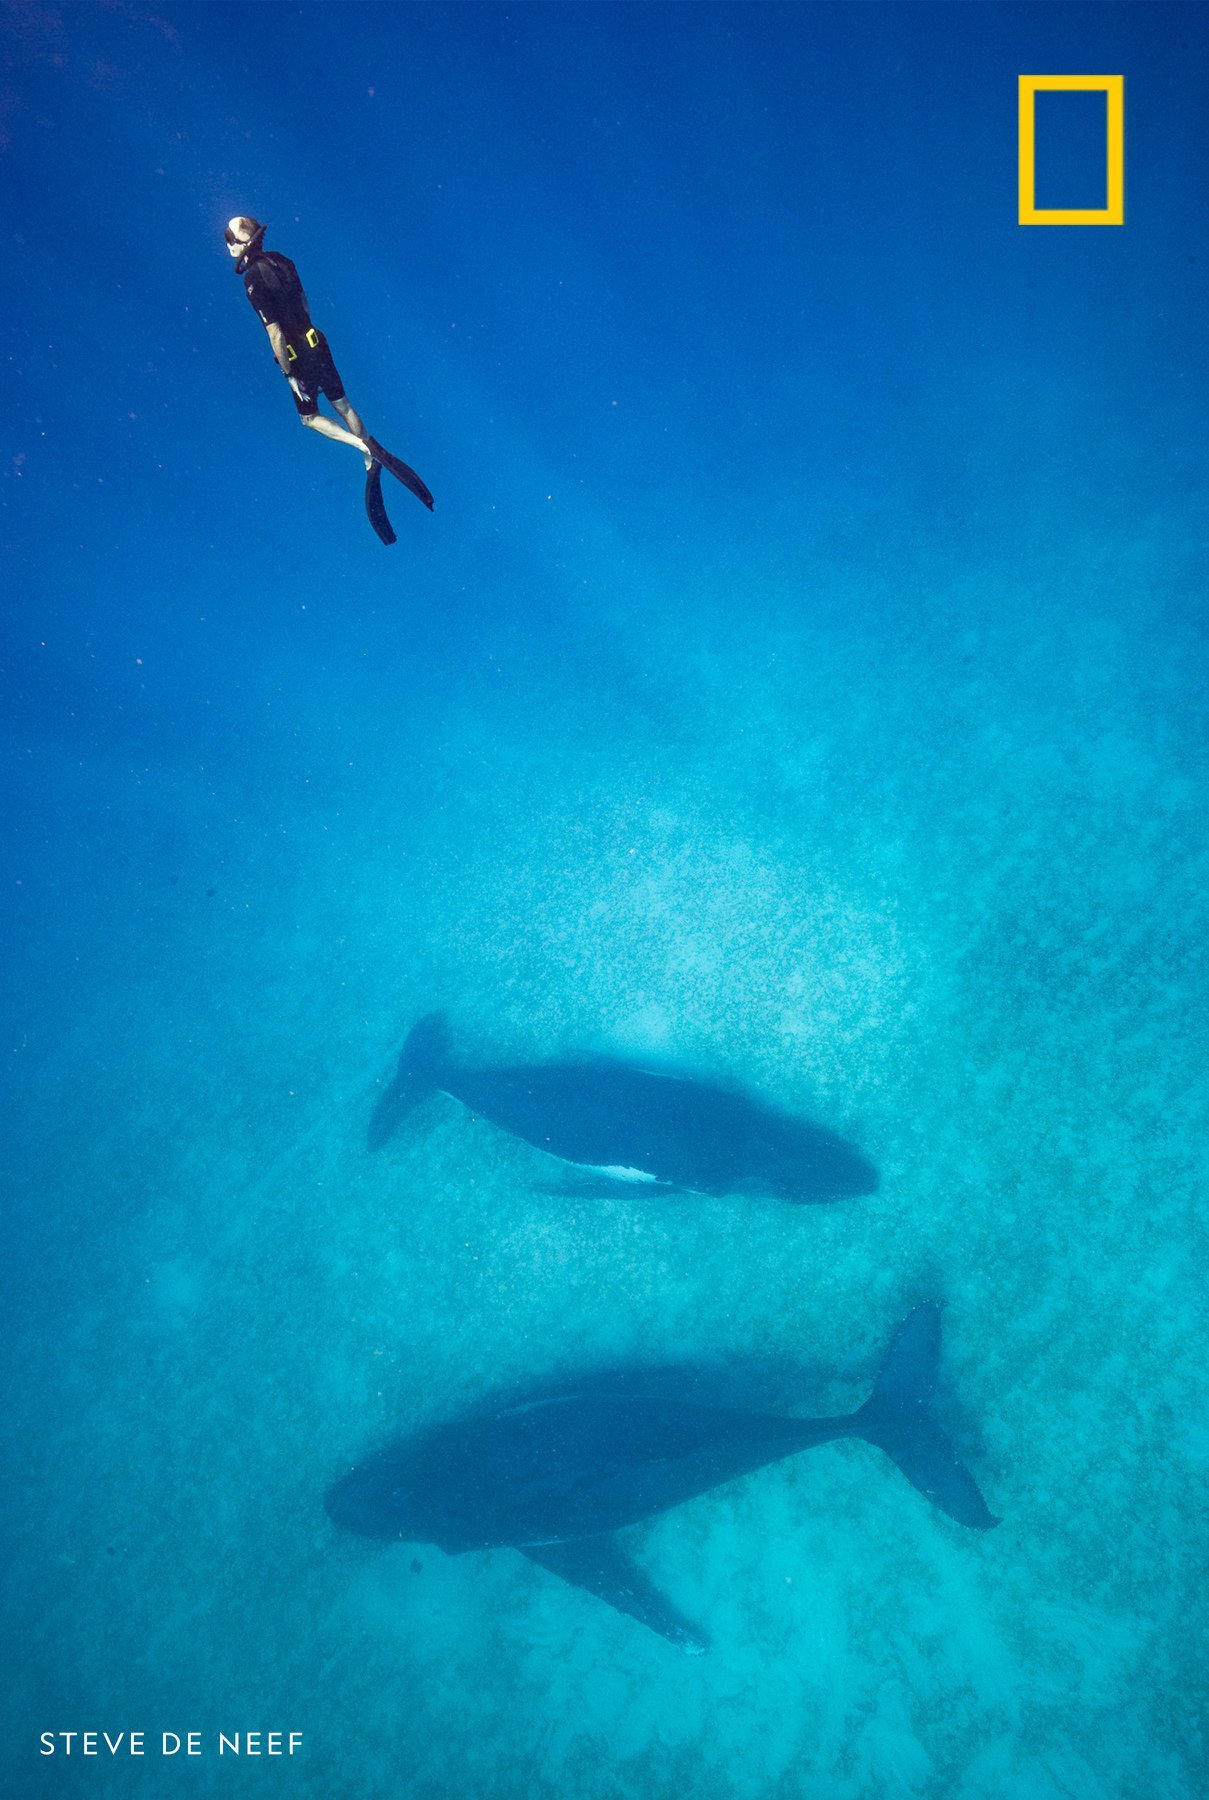 """On assignment for NatGeo, Brian Skerry swims with humpback whales in the South Pacific. In our podcast """"Overheard"""" Skerry tells us about the burgeoning study of """"whale culture""""—and why these super smart cetaceans may have a lot more in common with us than we'd ever imagined. https://on.natgeo.com/overheard"""